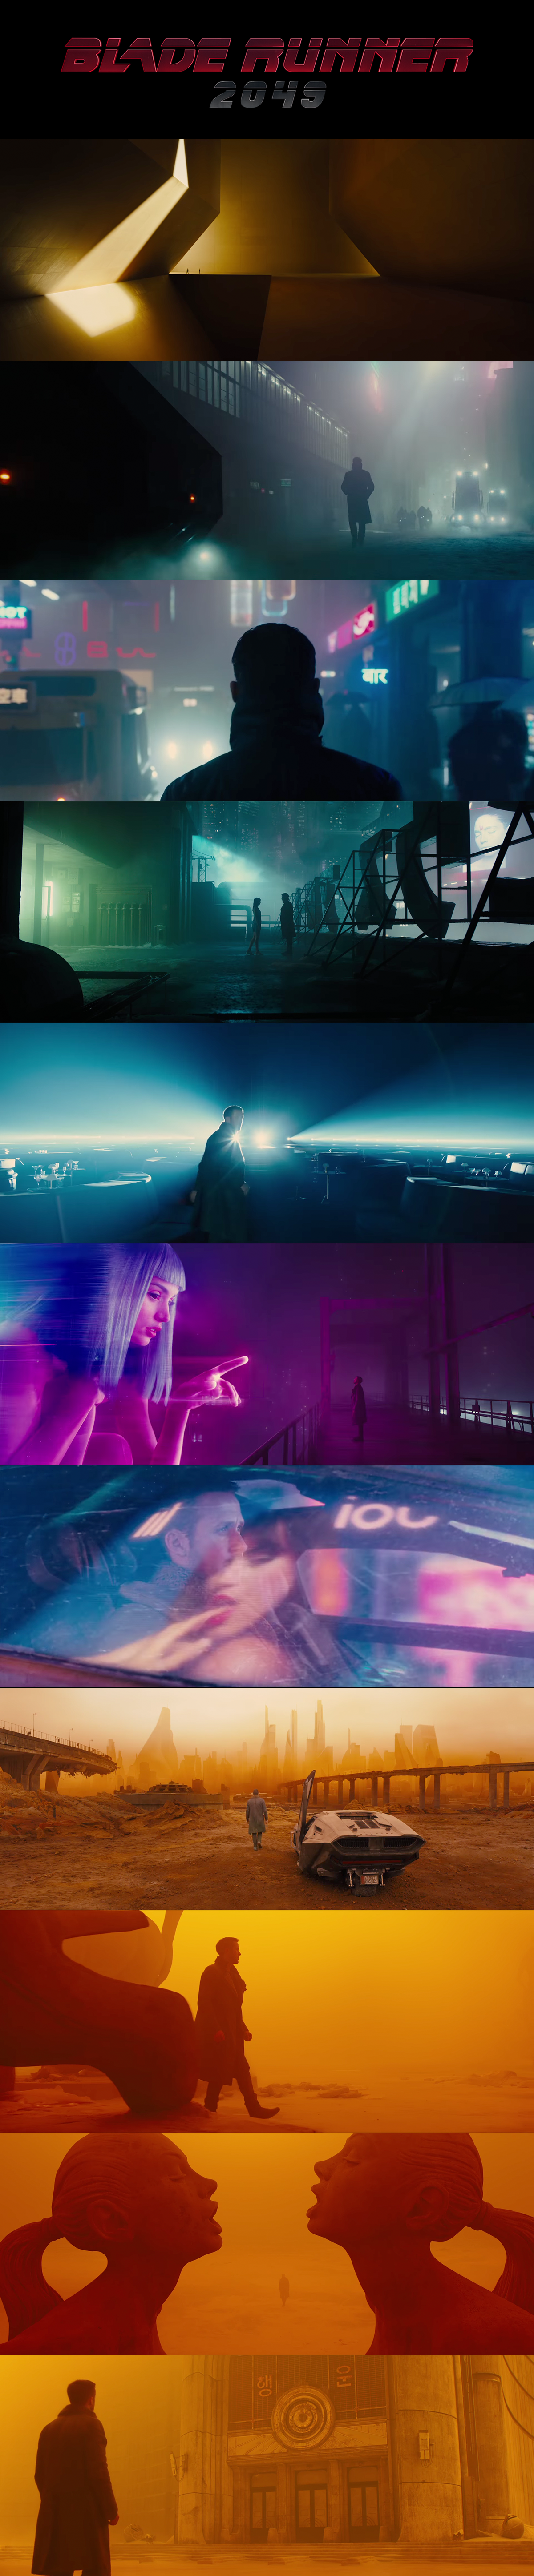 Blade Runner 2049 Amazing Palette Color Cinematography Pinterest